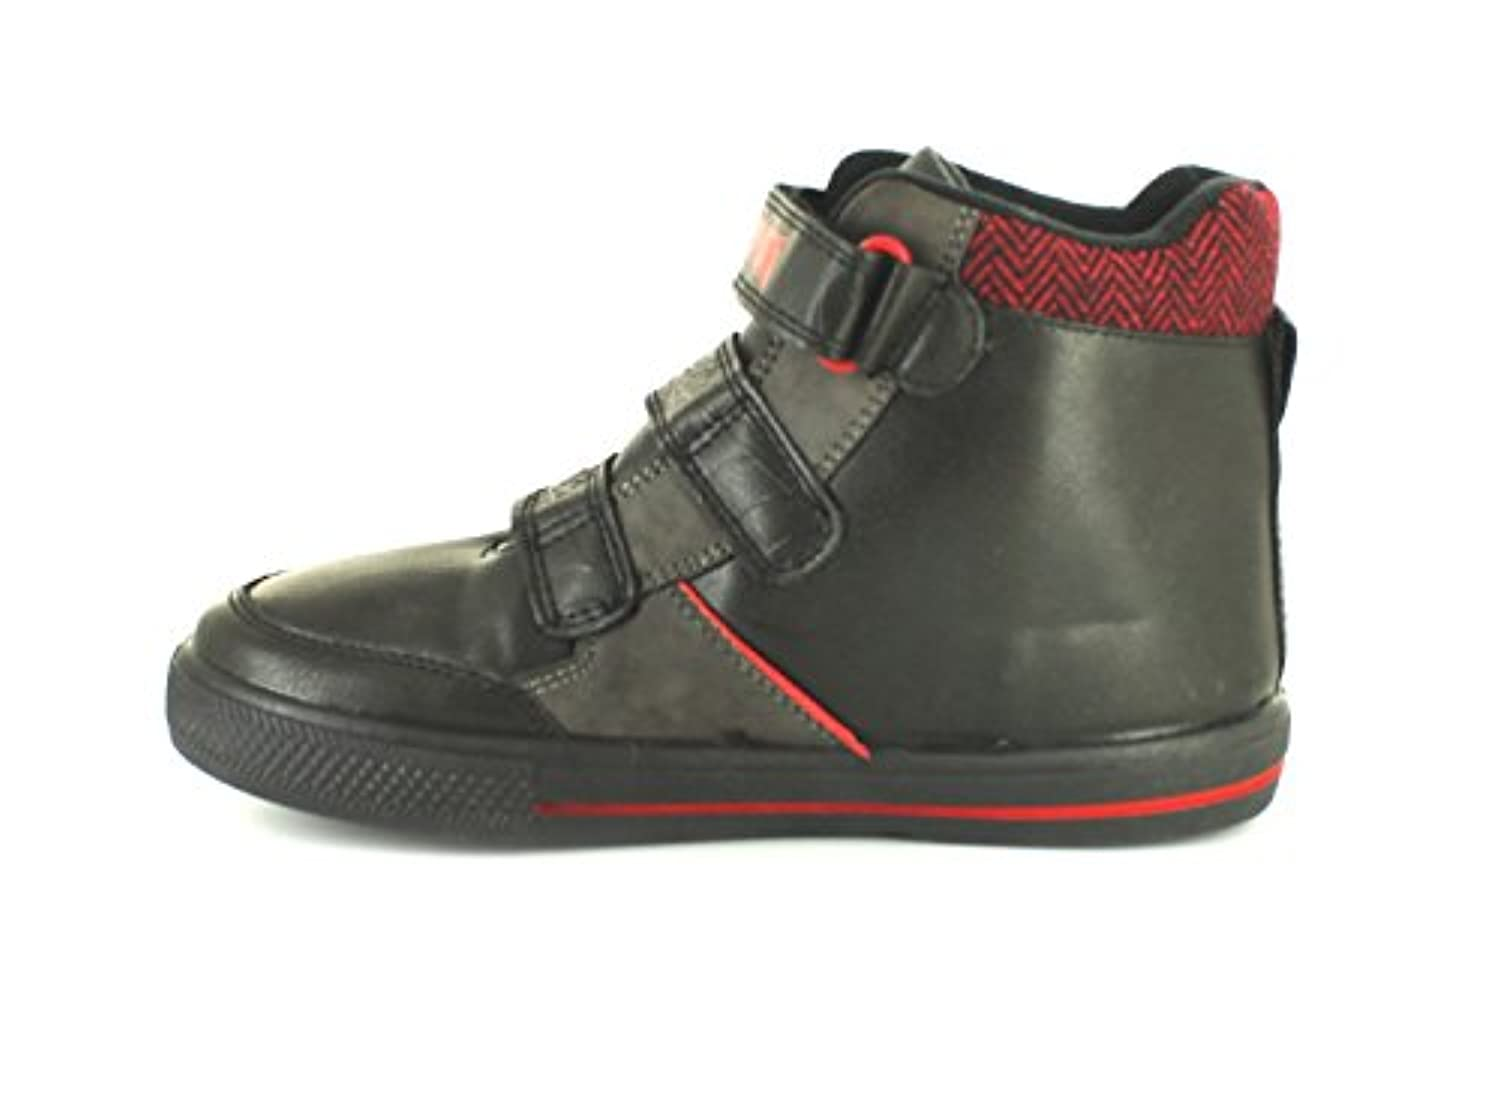 New Boys/Childrens Black/Red Spiderman Touch Fastening Boots - Black/Red - UK SIZE 1